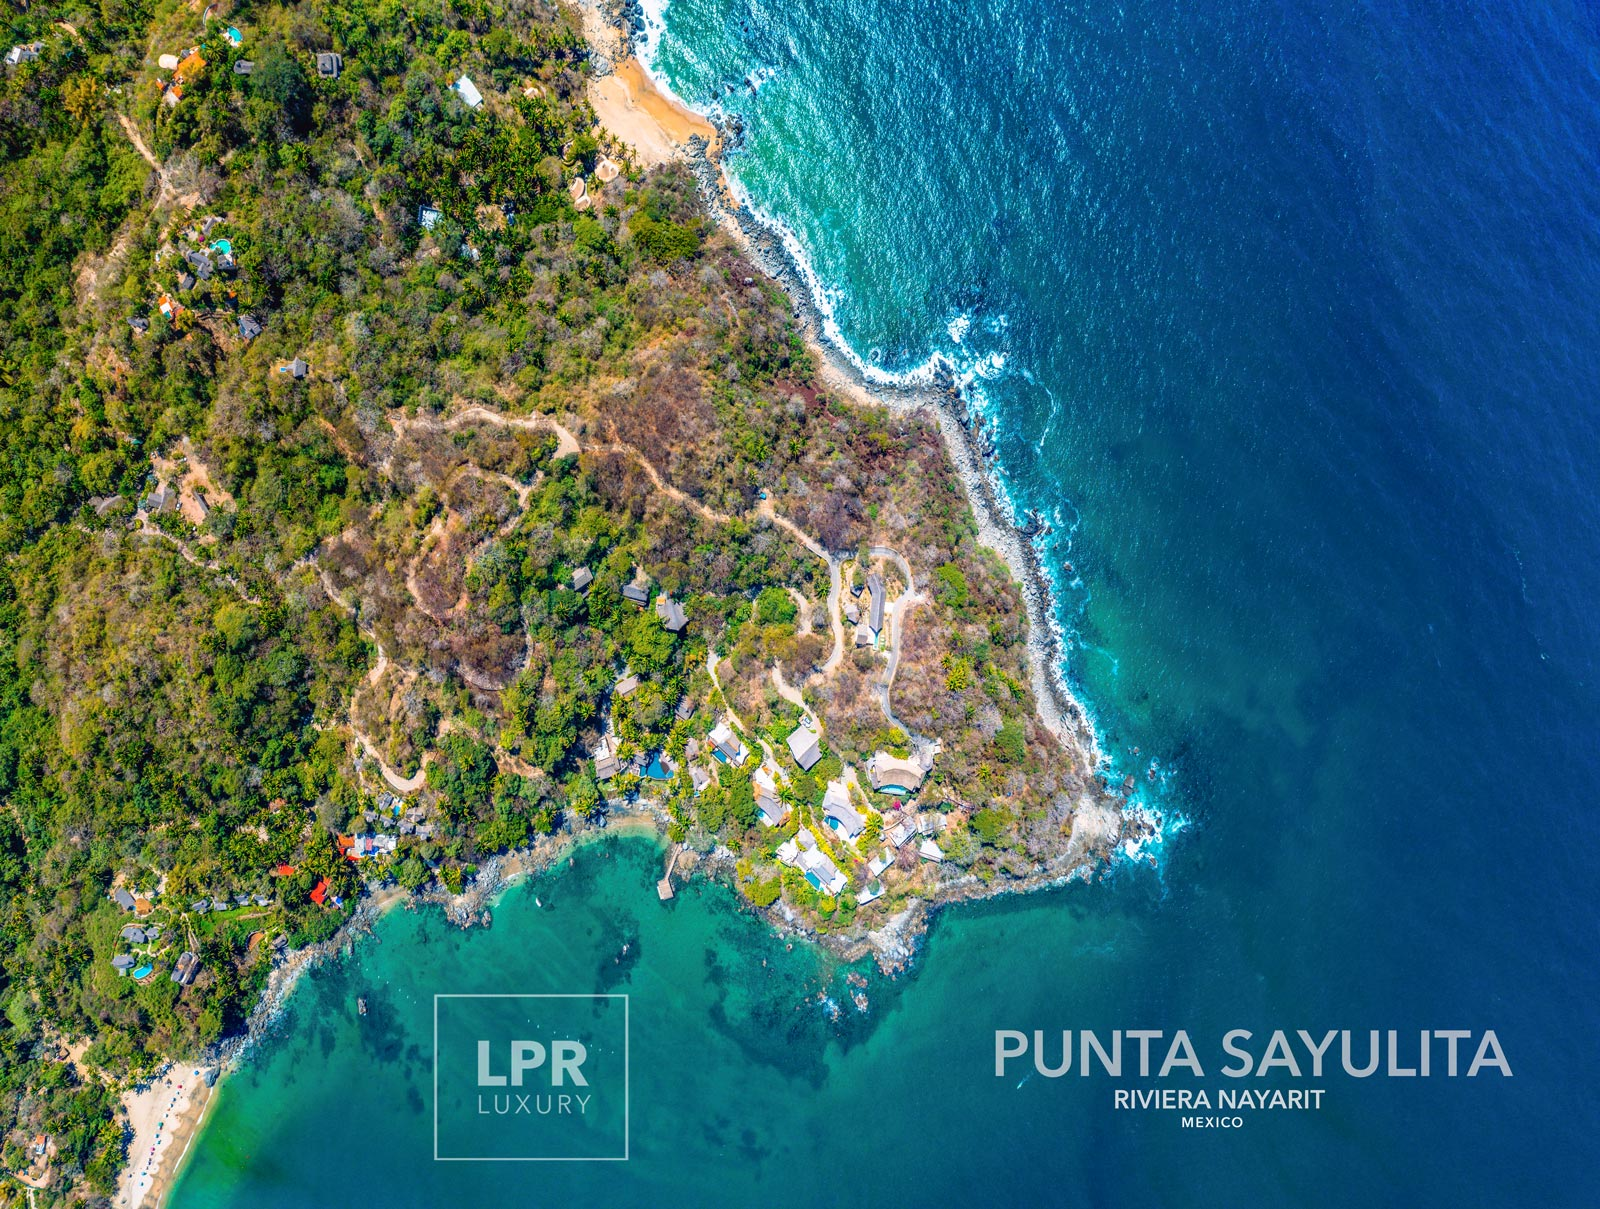 Punta Sayulita - Luxury beachfront vacation real estate for sale - Riviera Nayarit, Mexico